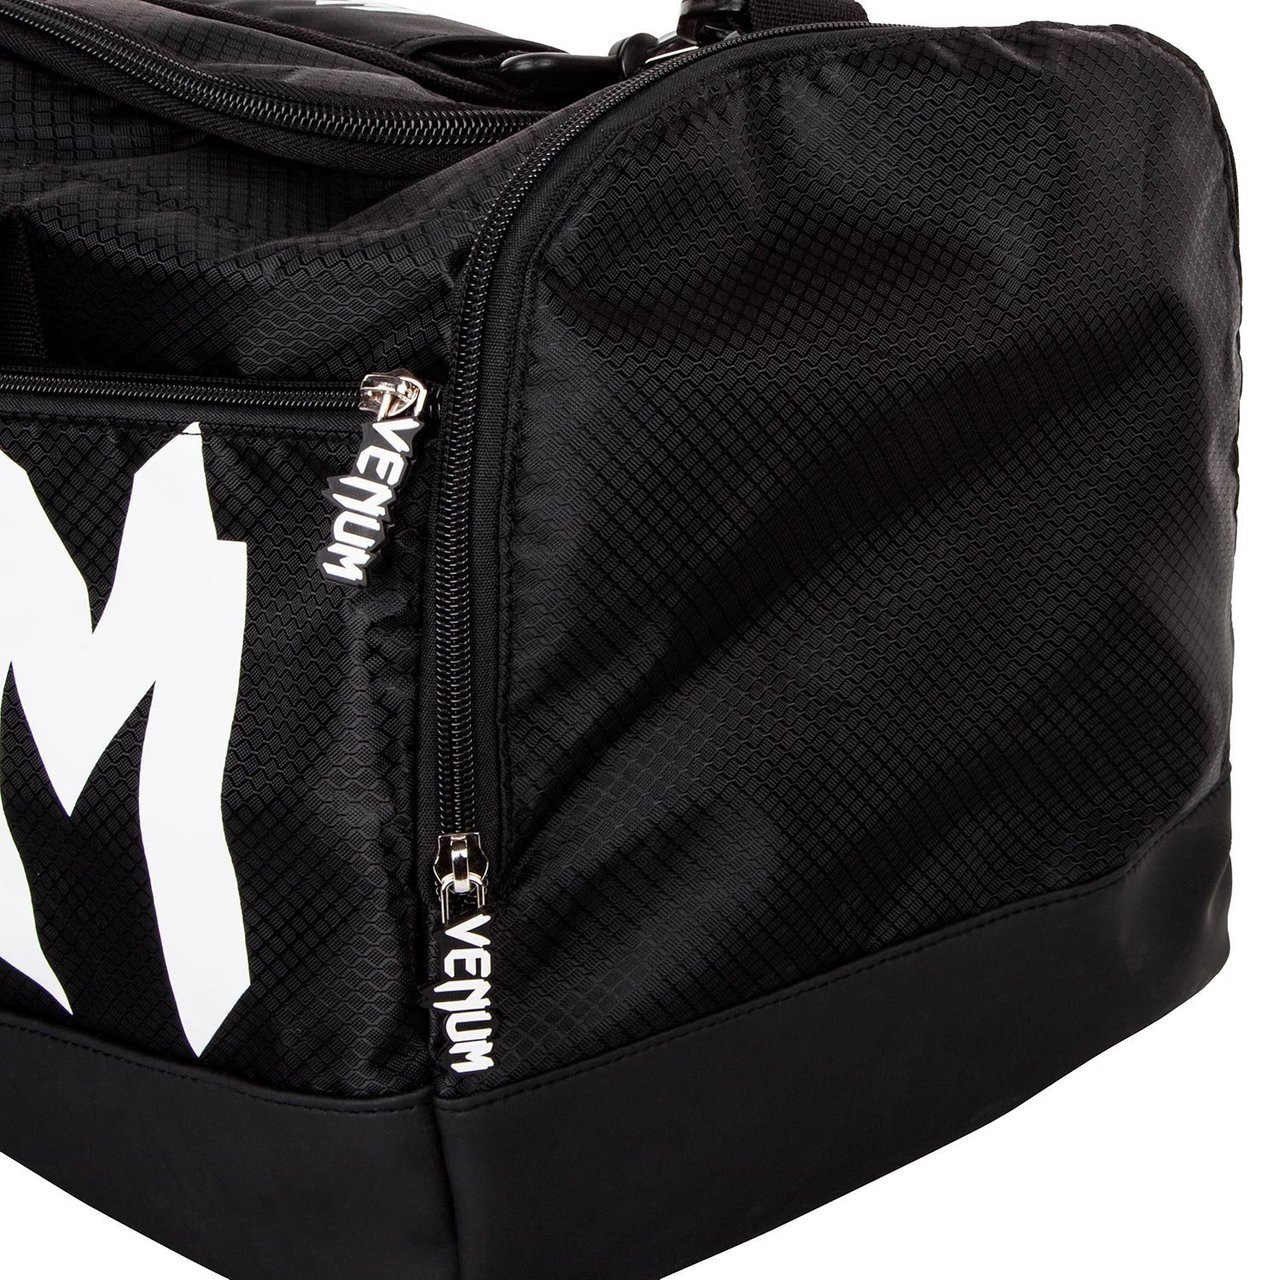 side pocket closed of the Venum Sparring Sports Bag  in Black on White available at www.thejiujitsushop.com  Enjoy Free Shipping from The Jiu Jitsu Shop